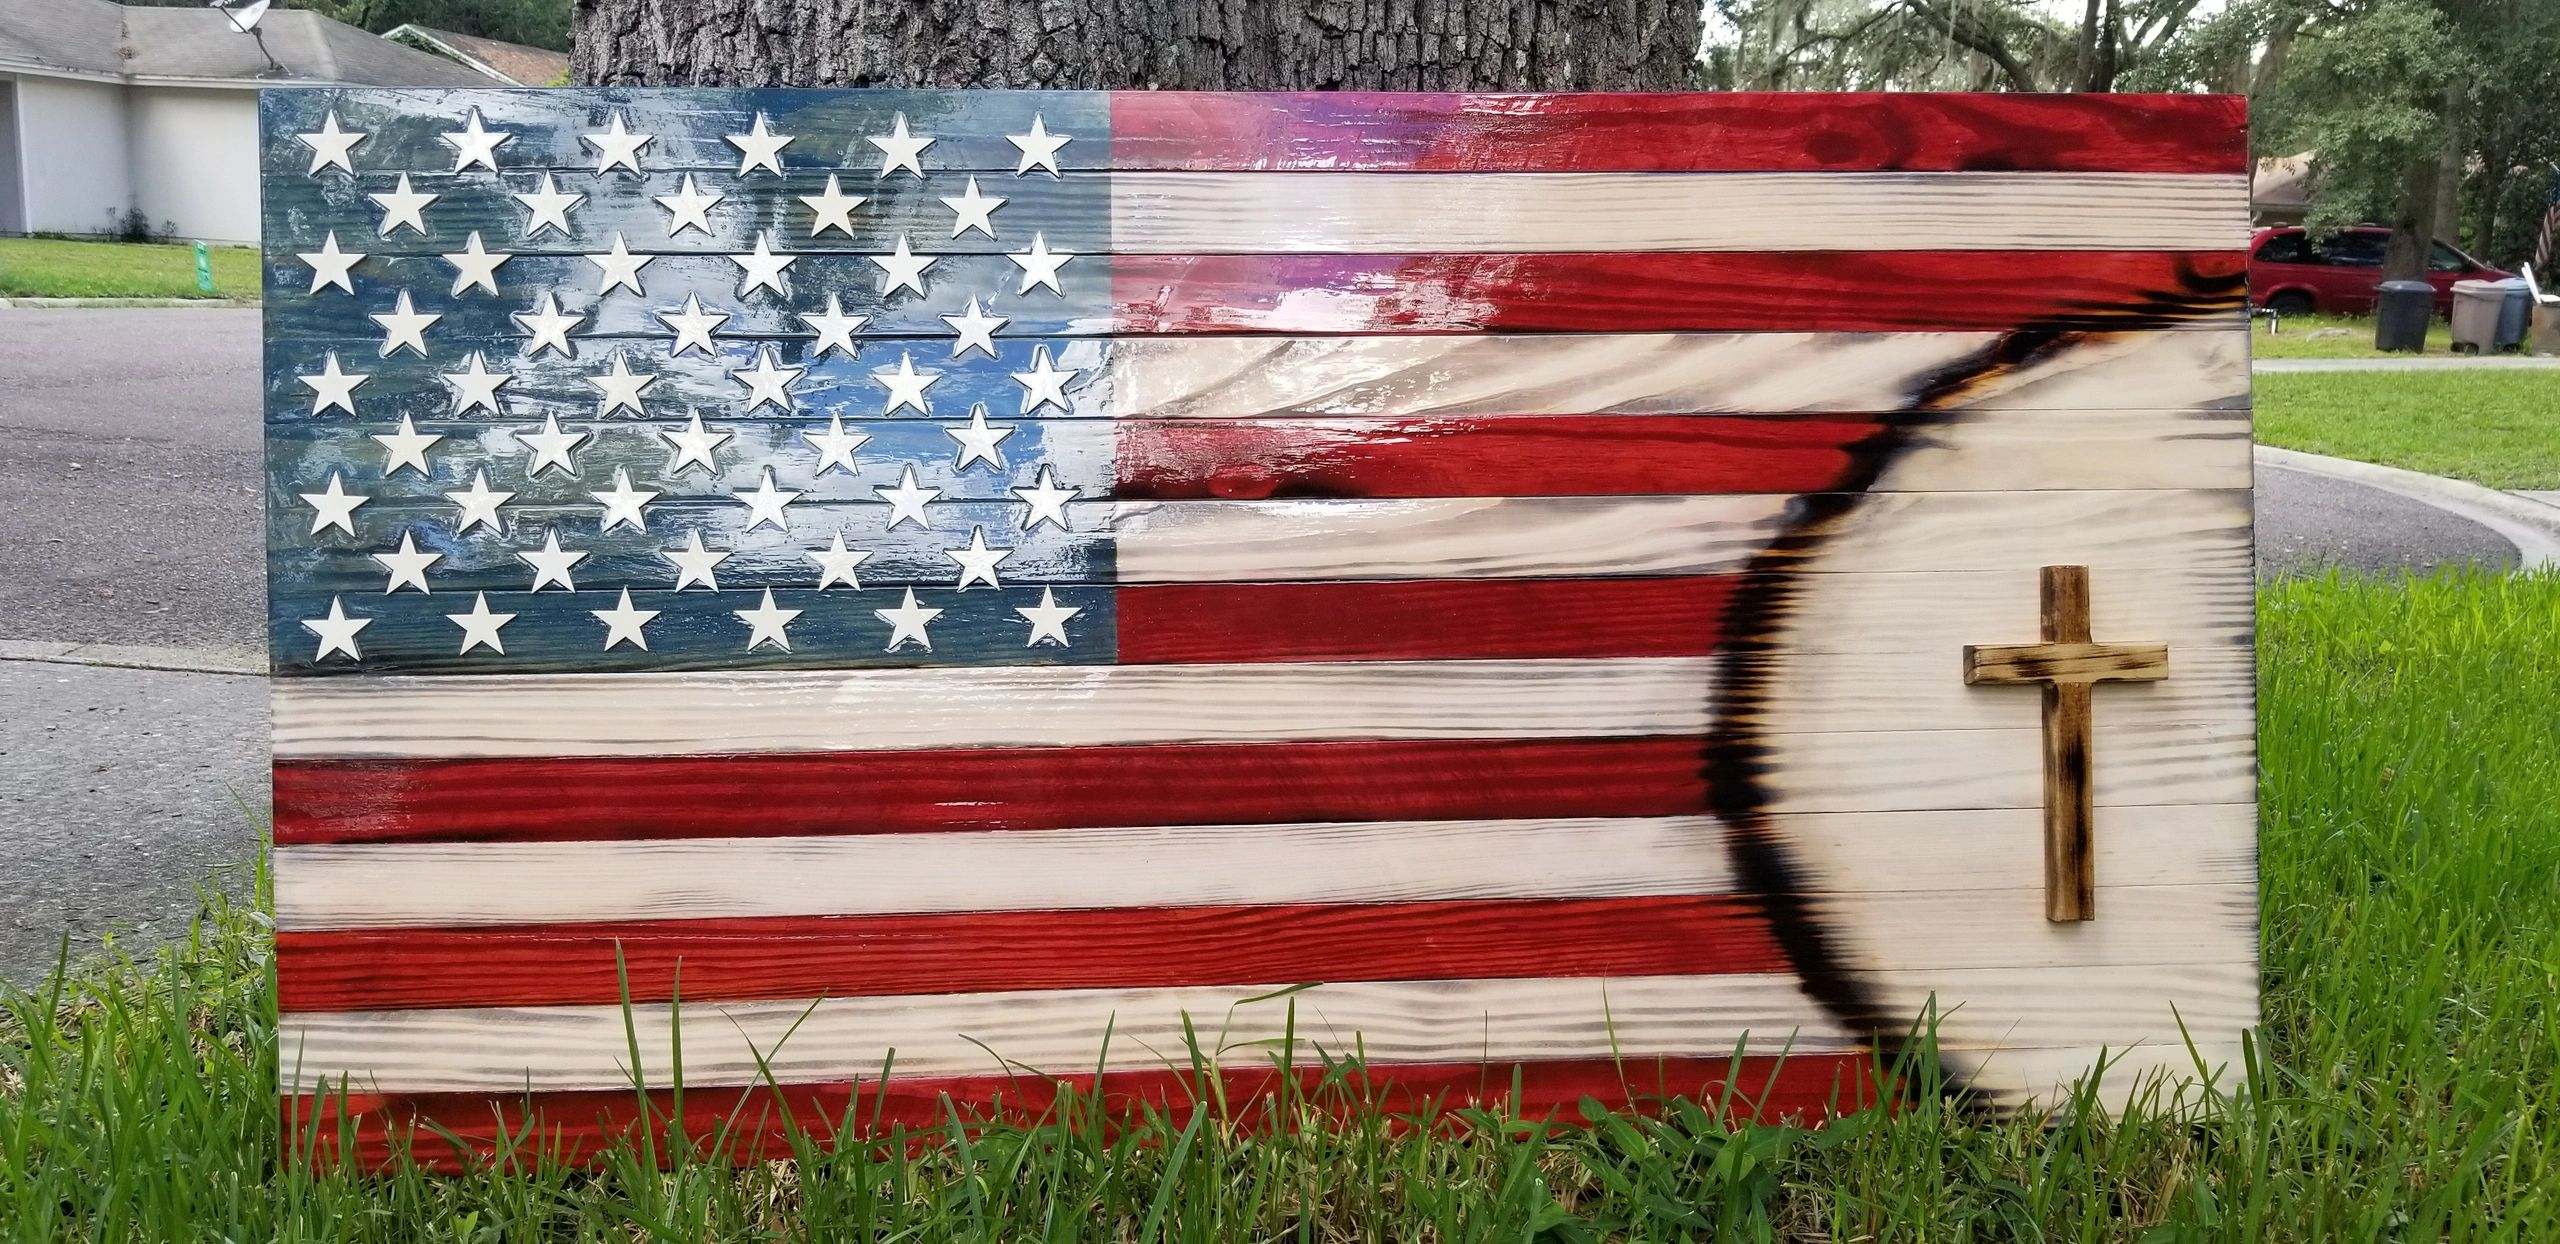 Rustic Home Decor Patriotic American Flags Home Grown Wooden Flags